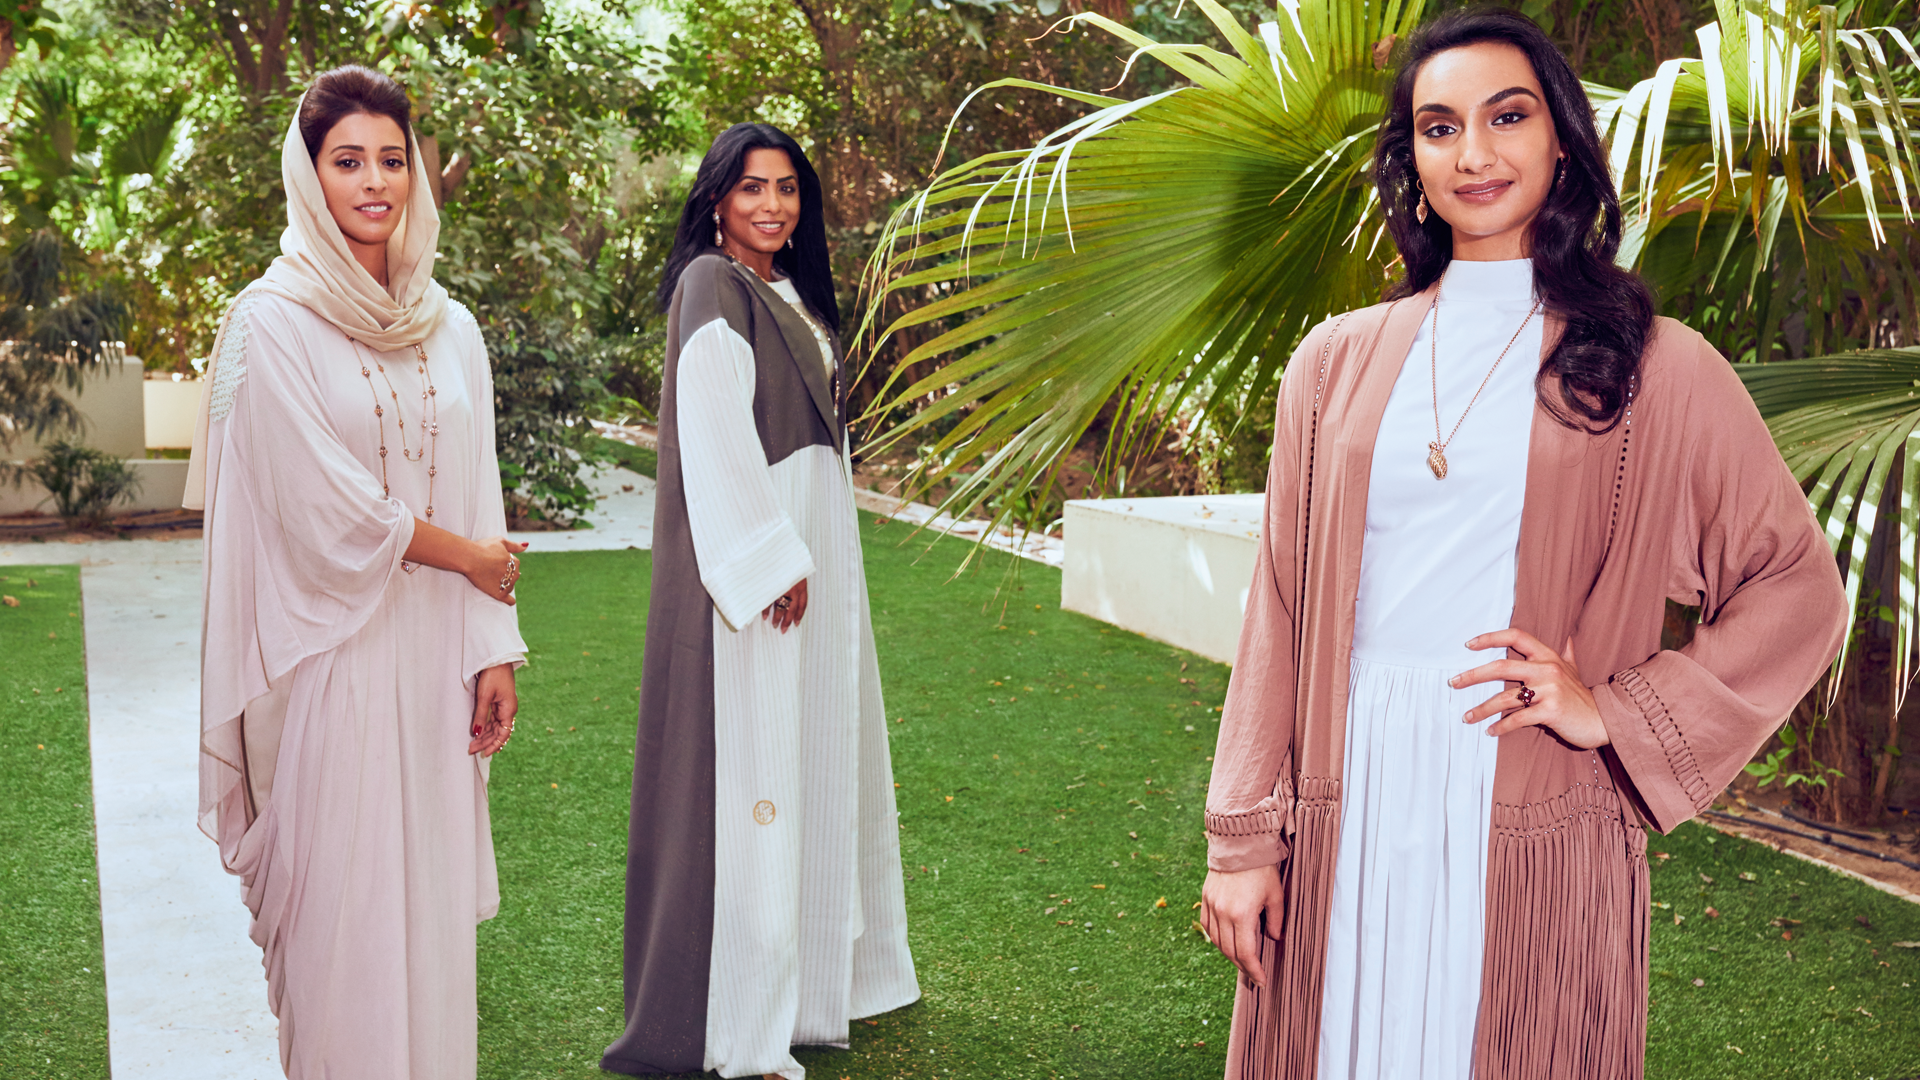 Celebrating UAE Culture | The New Gem